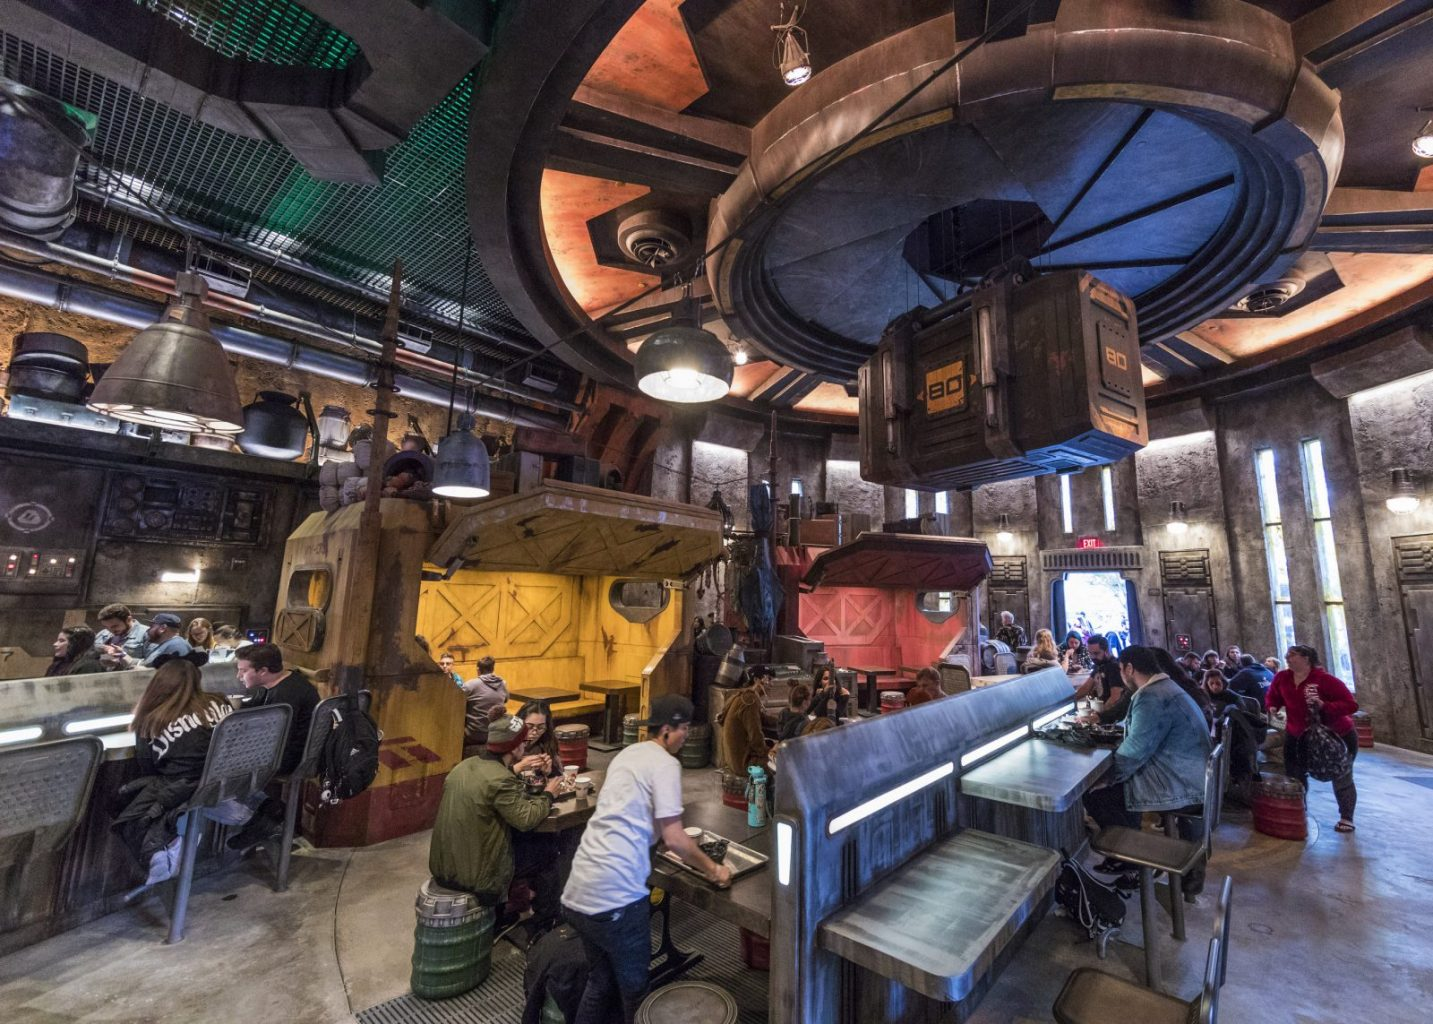 Inside Docking Bay 7, a new Star Wars themed Disneyland Restaurant